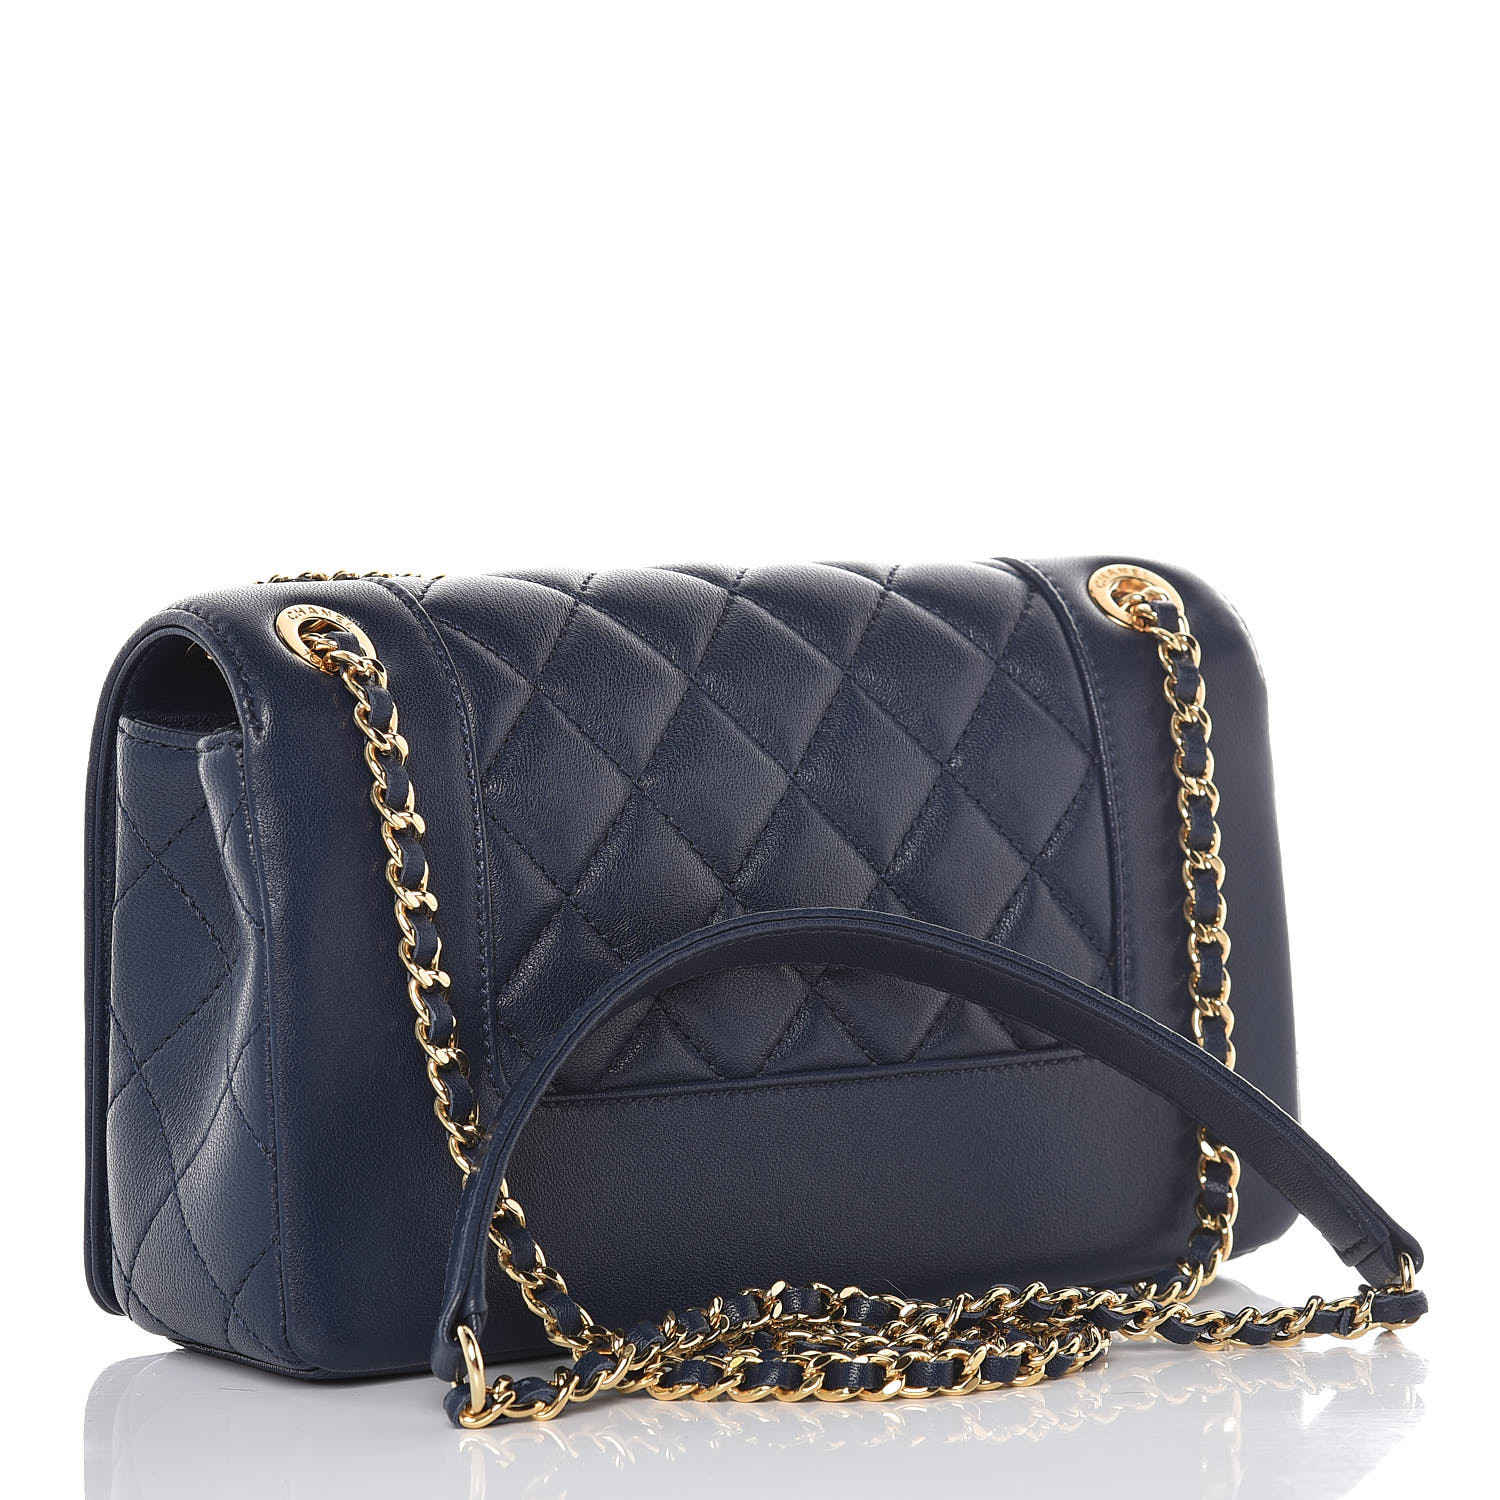 e83612265cbe CHANEL Sheepskin Quilted Small Vintage Mademoiselle Flap Navy. Empty. Pinch/ Zoom